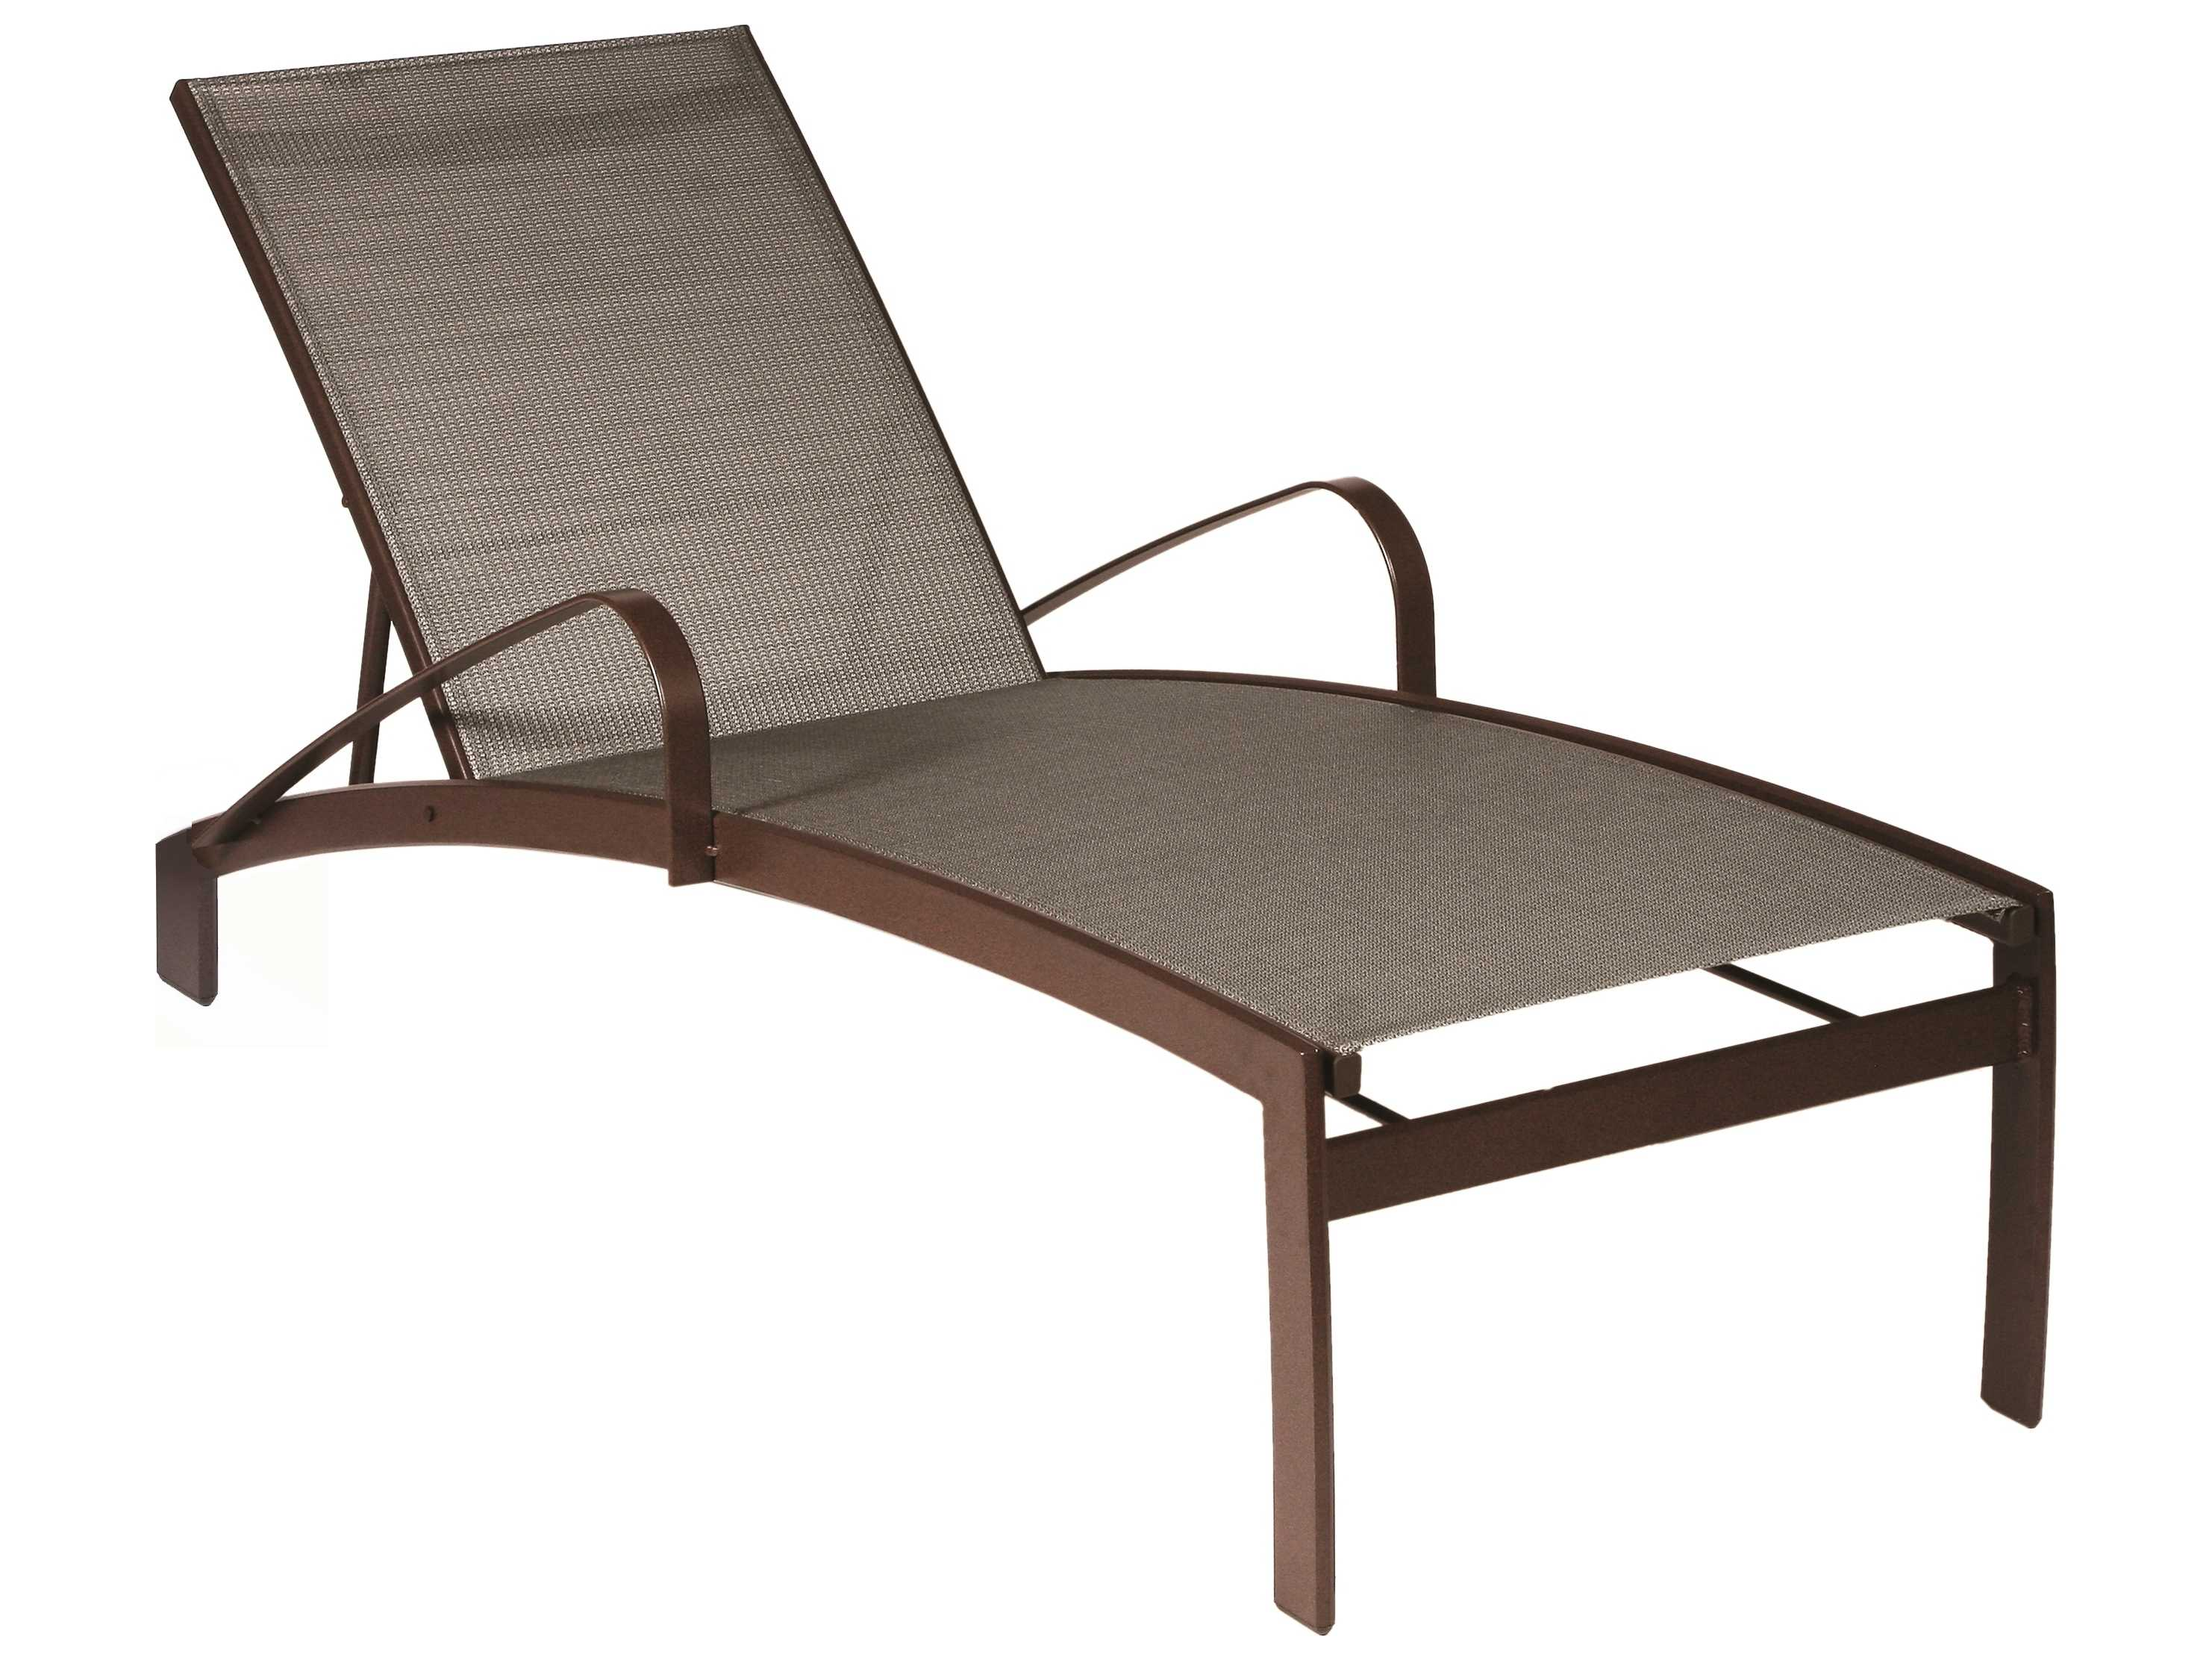 Suncoast vision sling cast aluminum chaise lounge 7989 for Cast aluminum chaise lounge